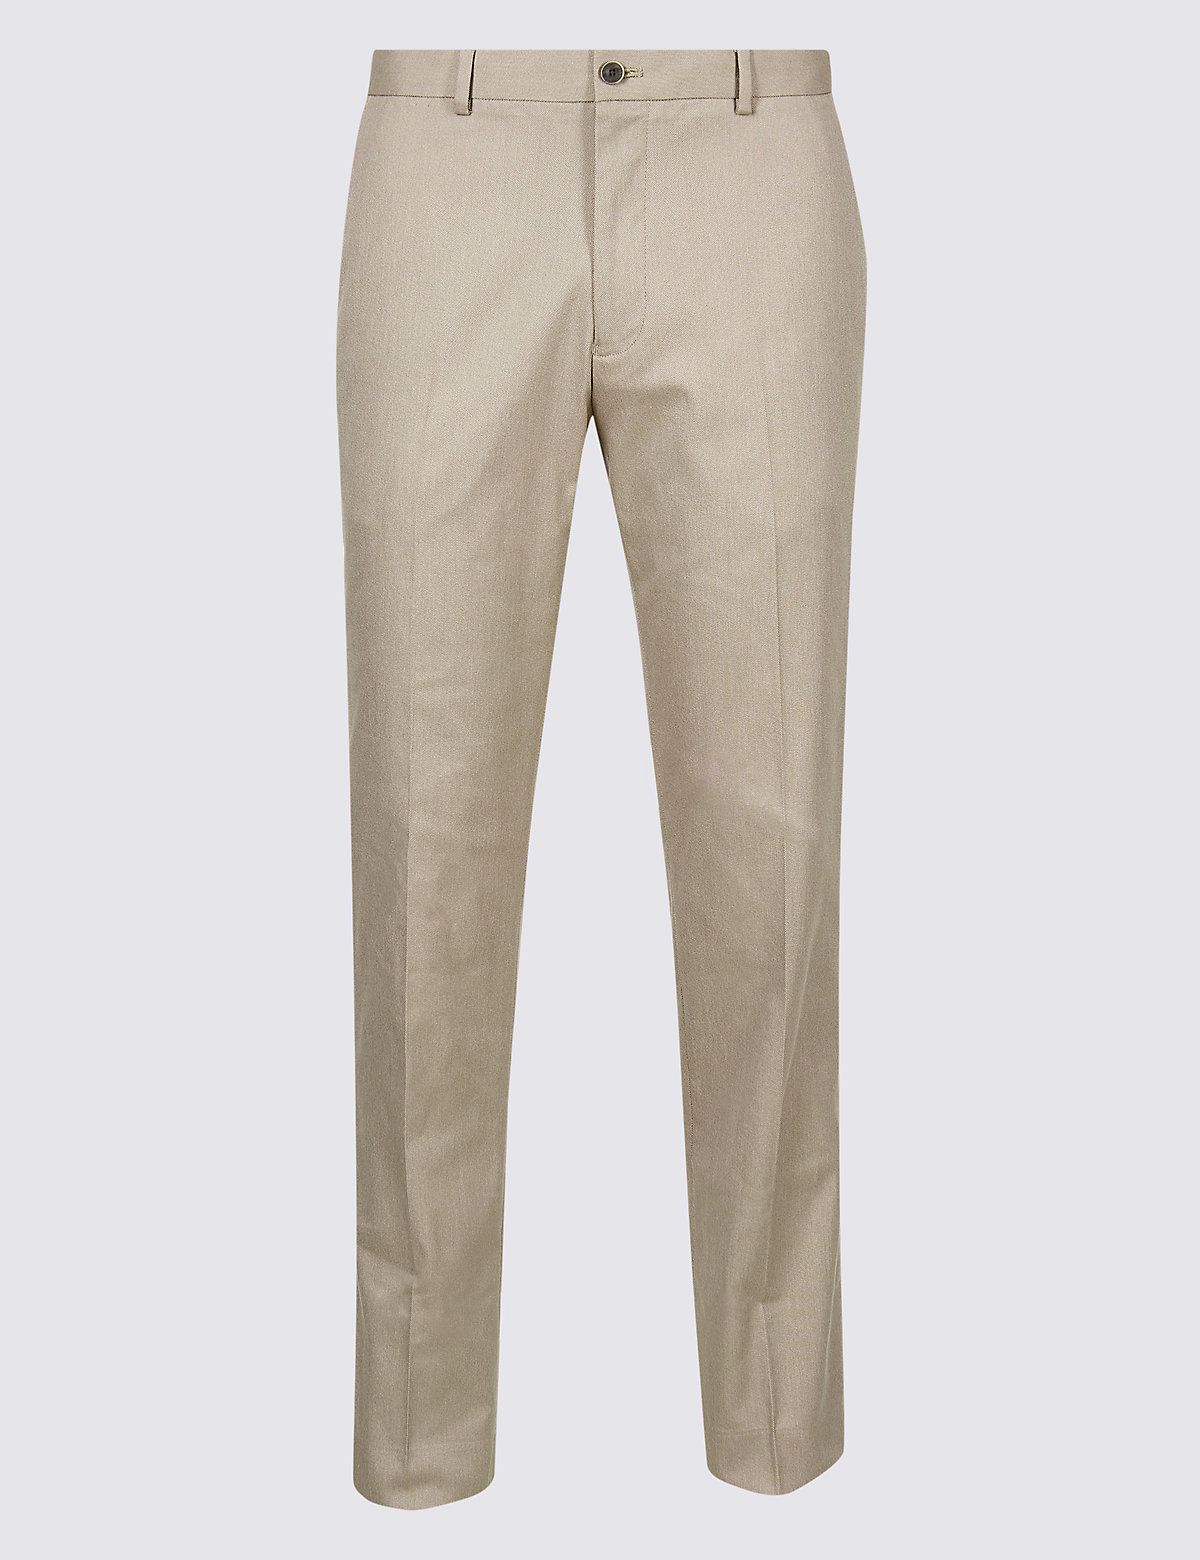 Marks & Spencer Neutral Tailored Fit Trousers